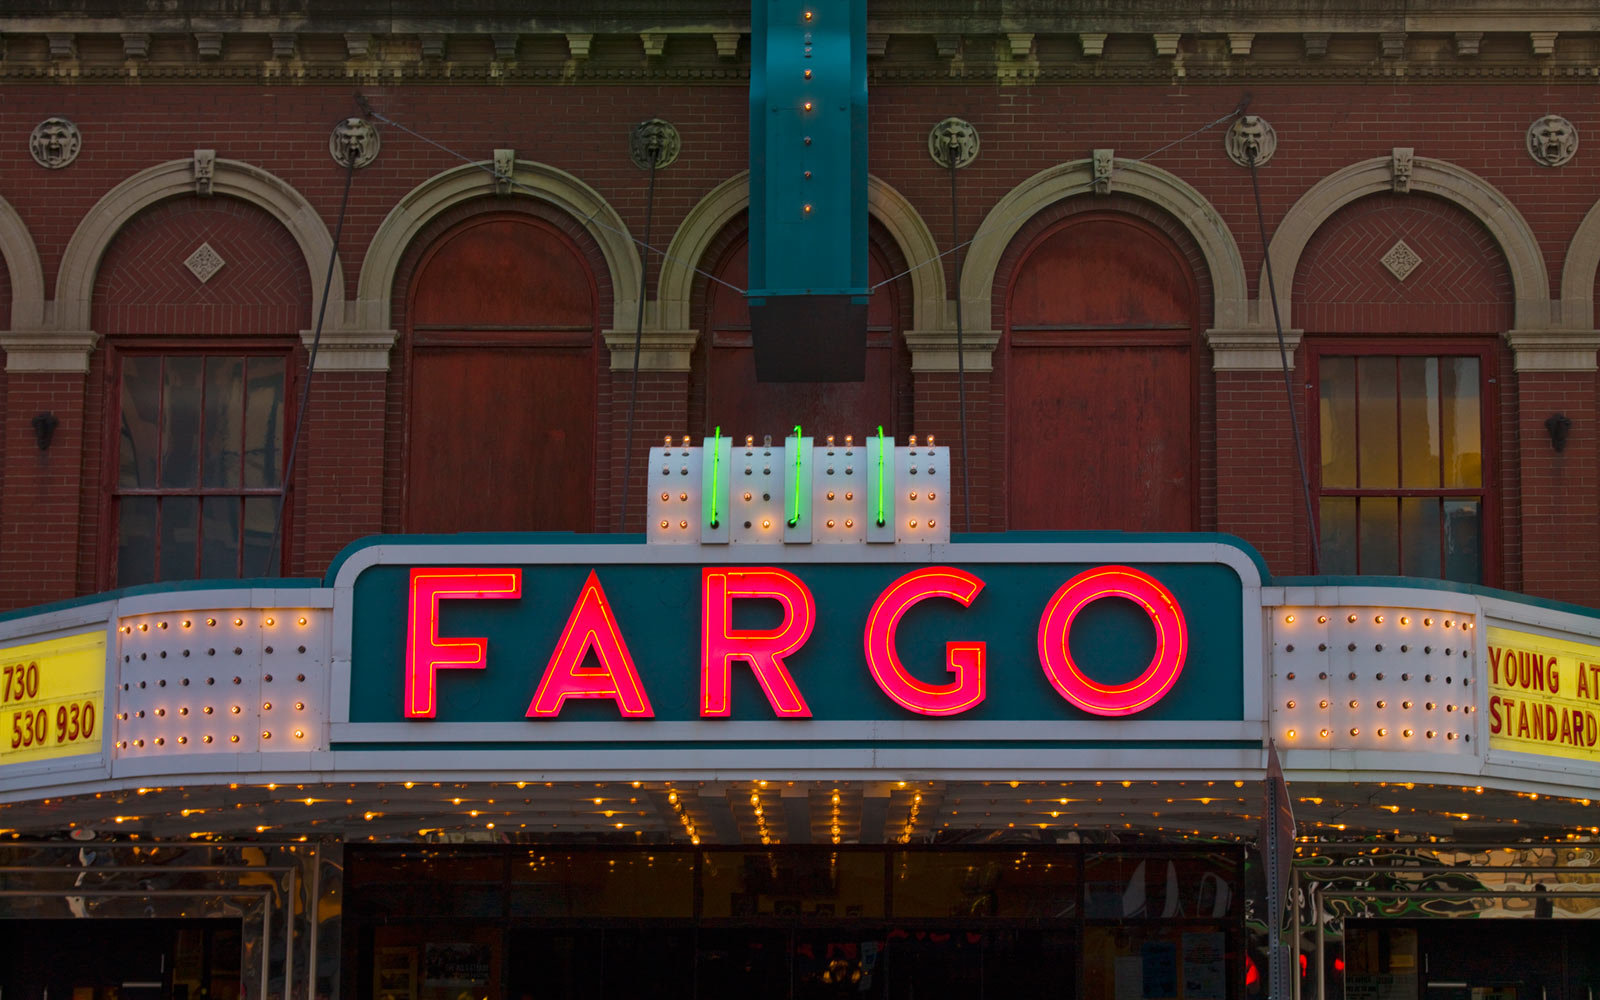 Fargo Theatre, Fargo, North Dakota